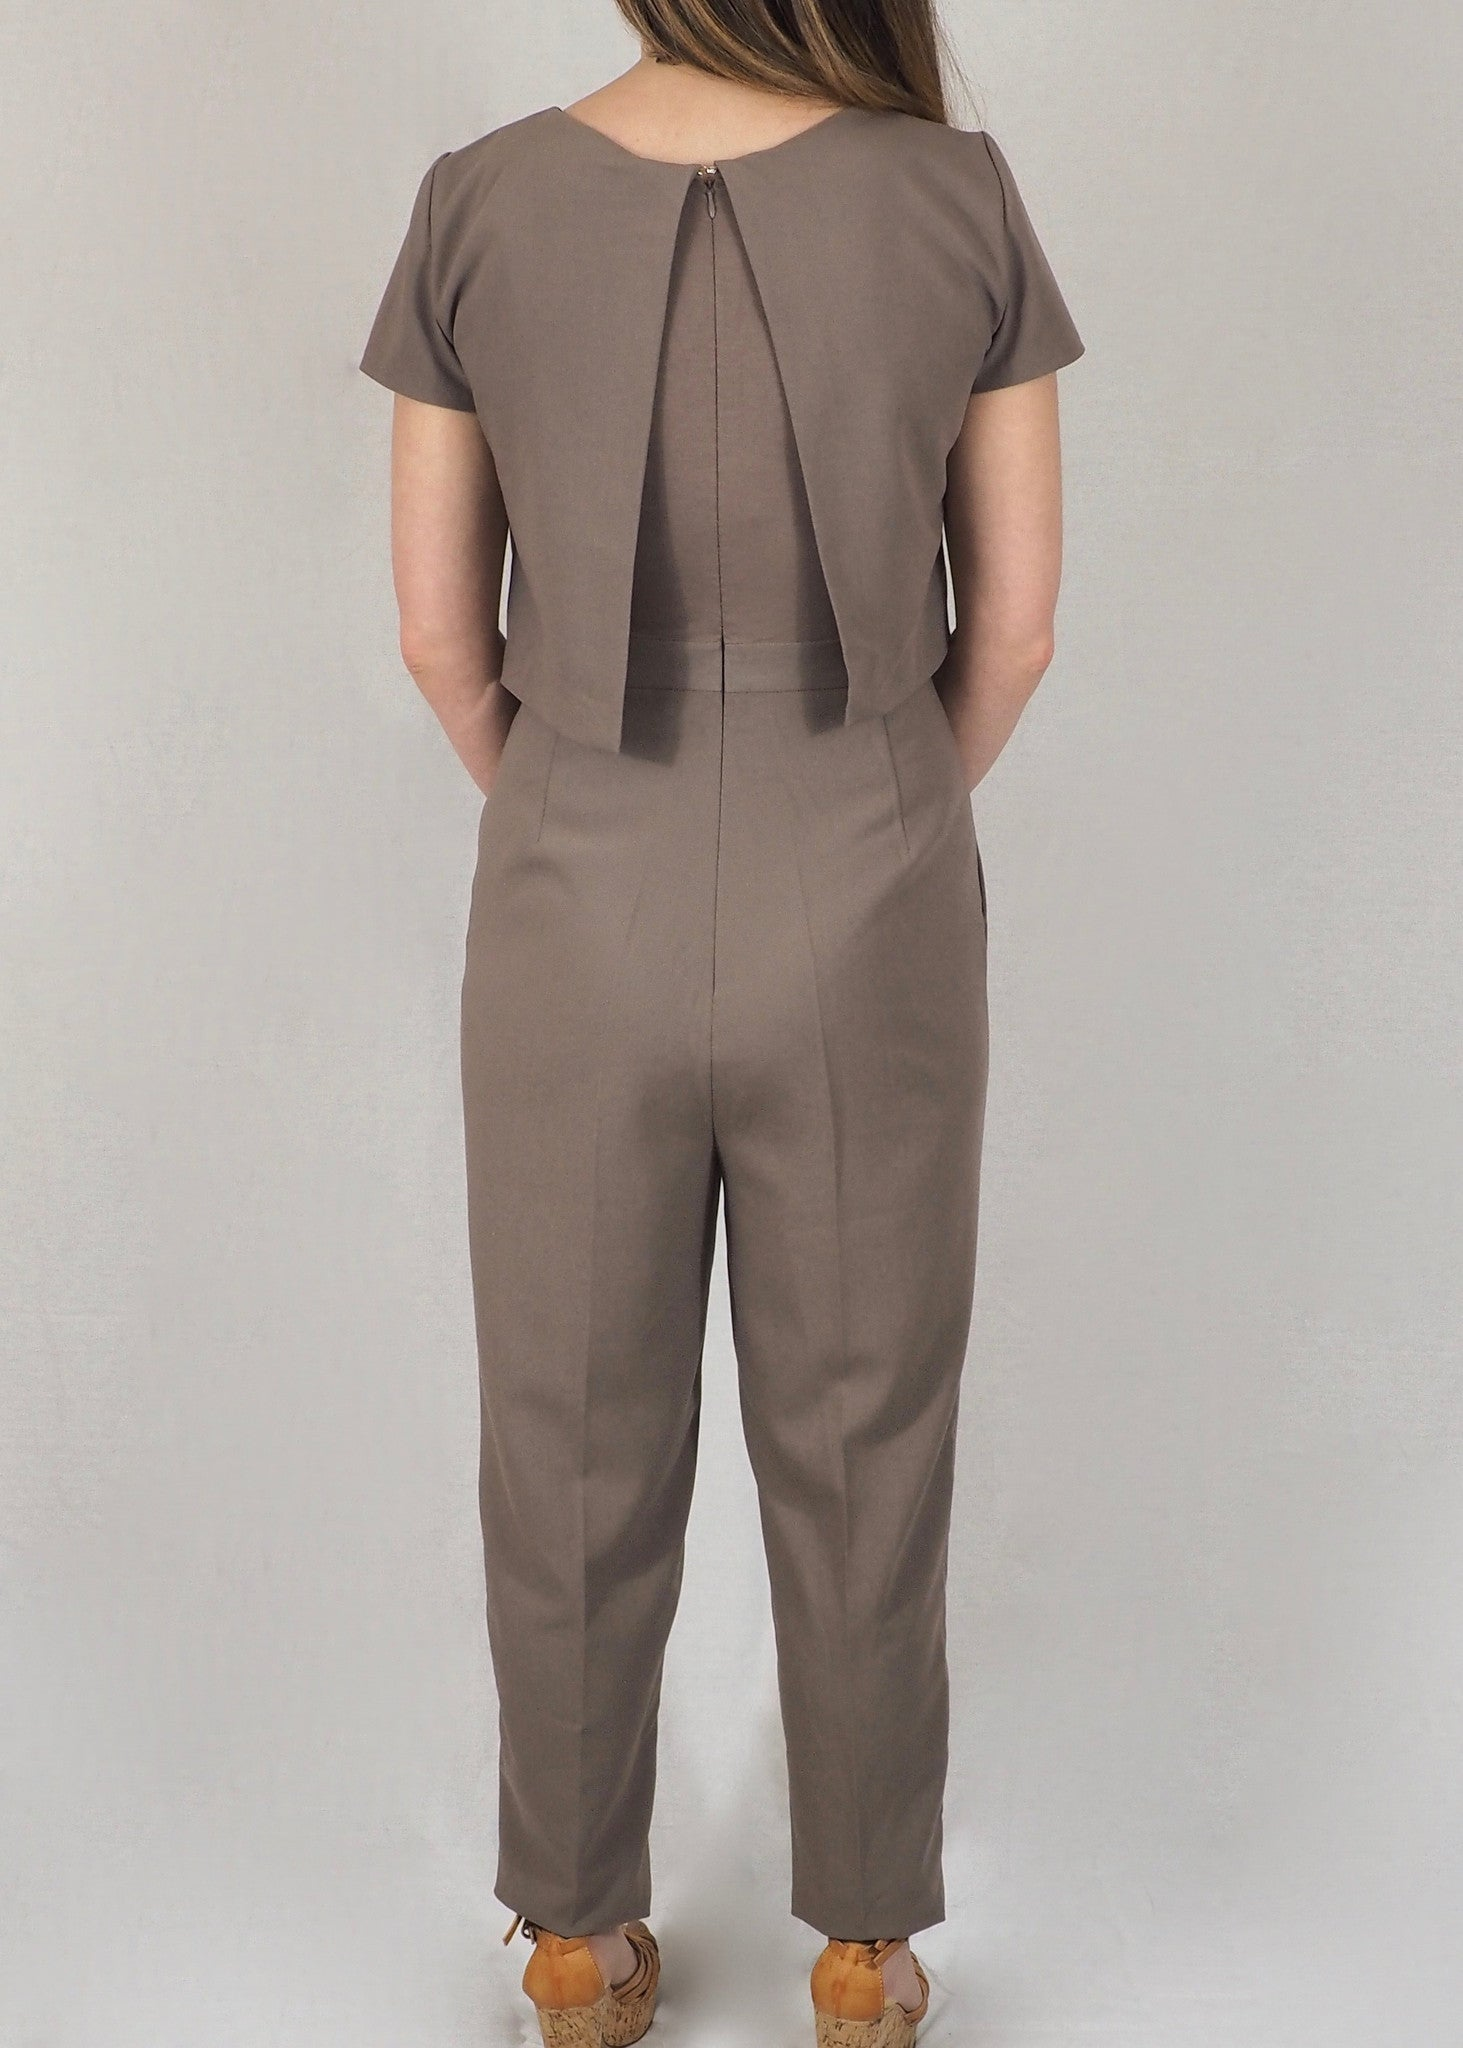 The Breastfeeding Jumpsuit - Taupe